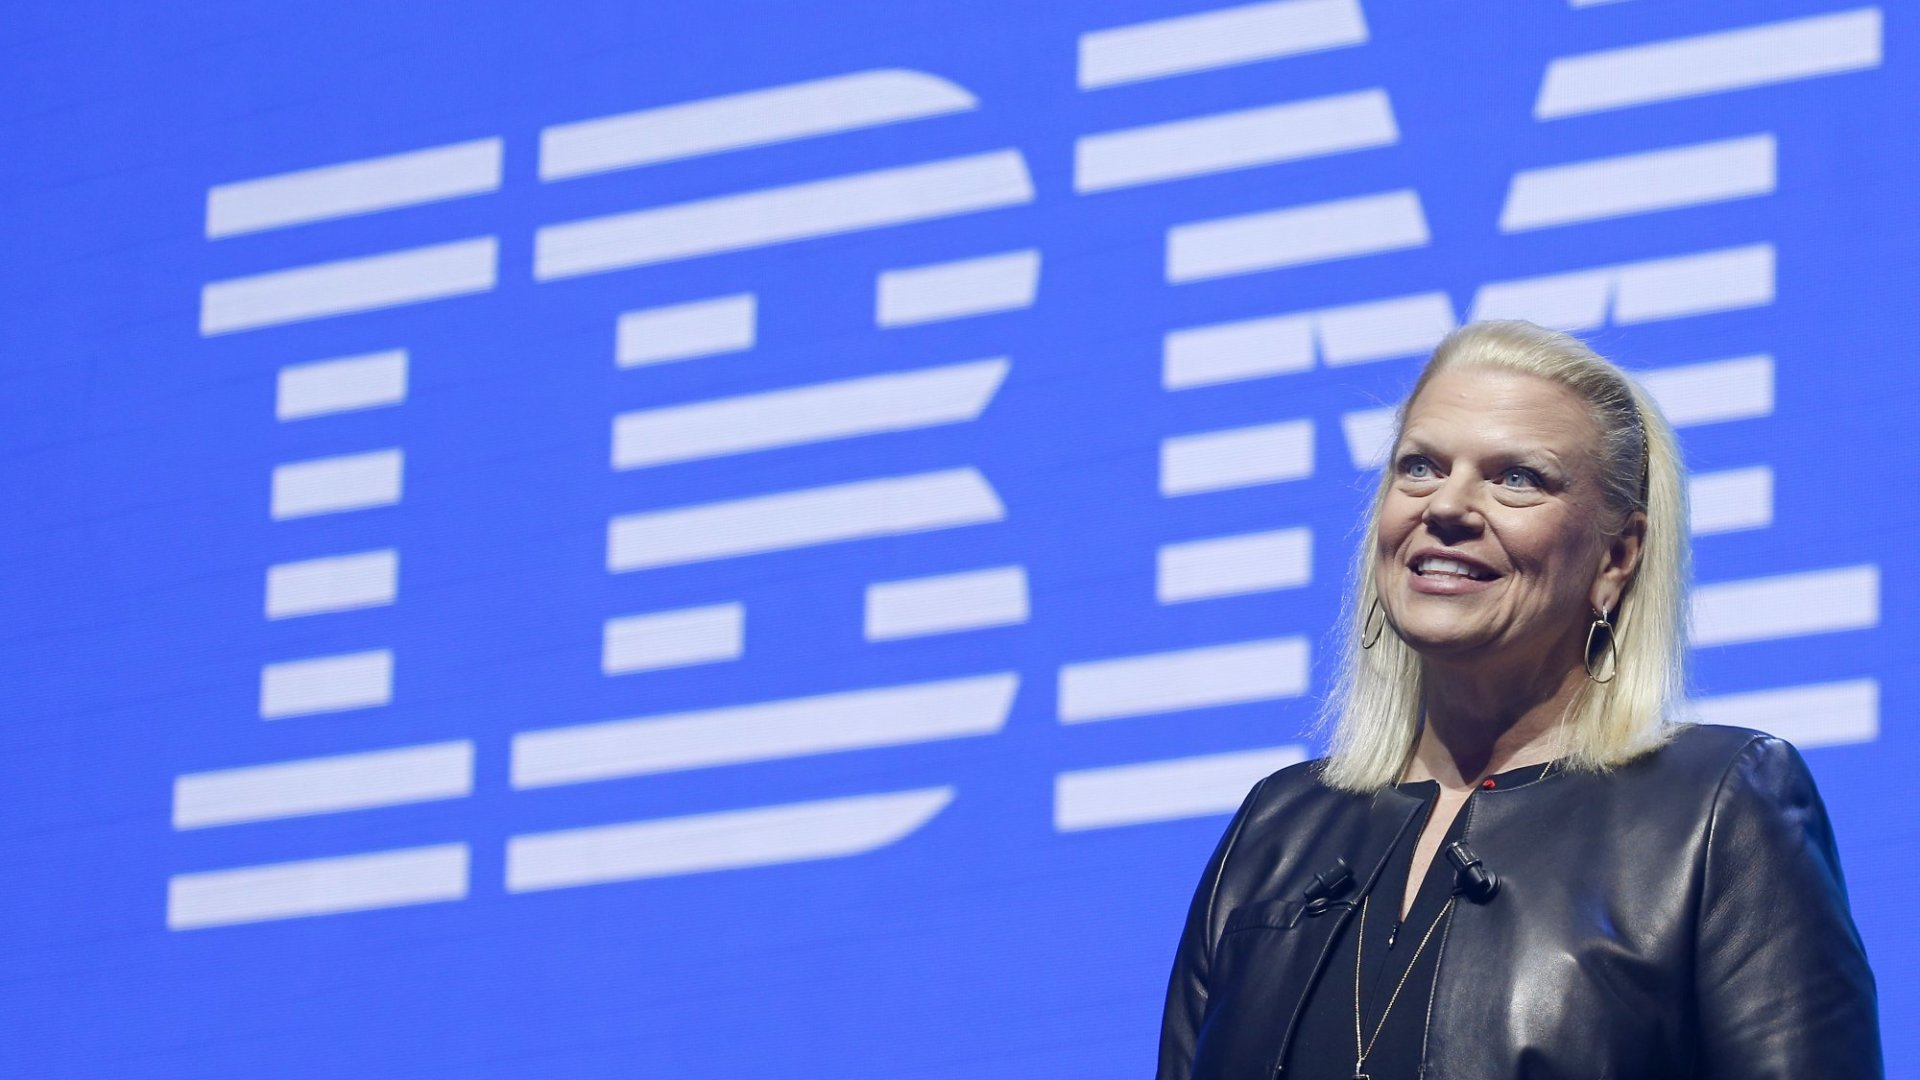 If Watson Is So Smart, Why Is IBM's Stock So Low?